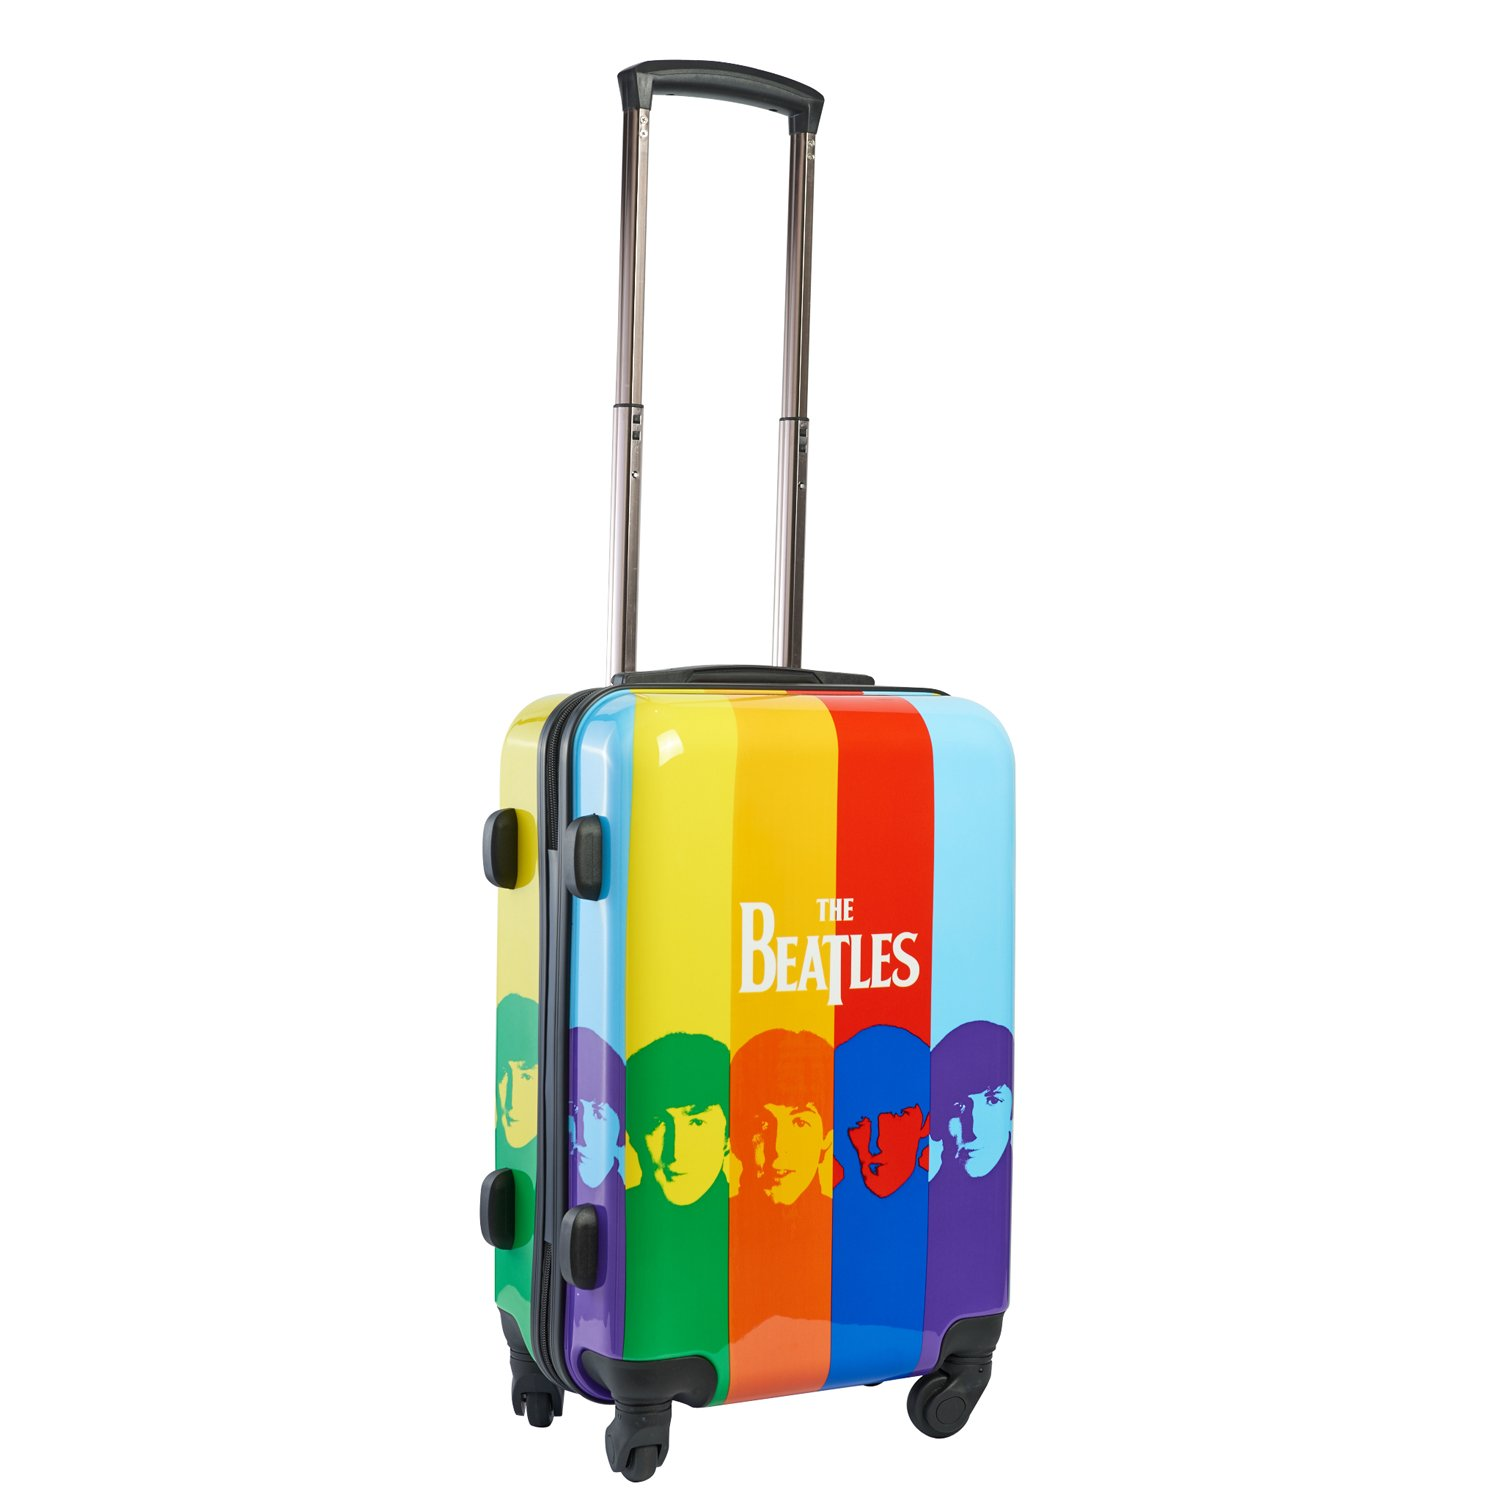 Beatles 21 Inch Spinner Rolling Luggage Suitcase Carry-On Luggage by Beatles